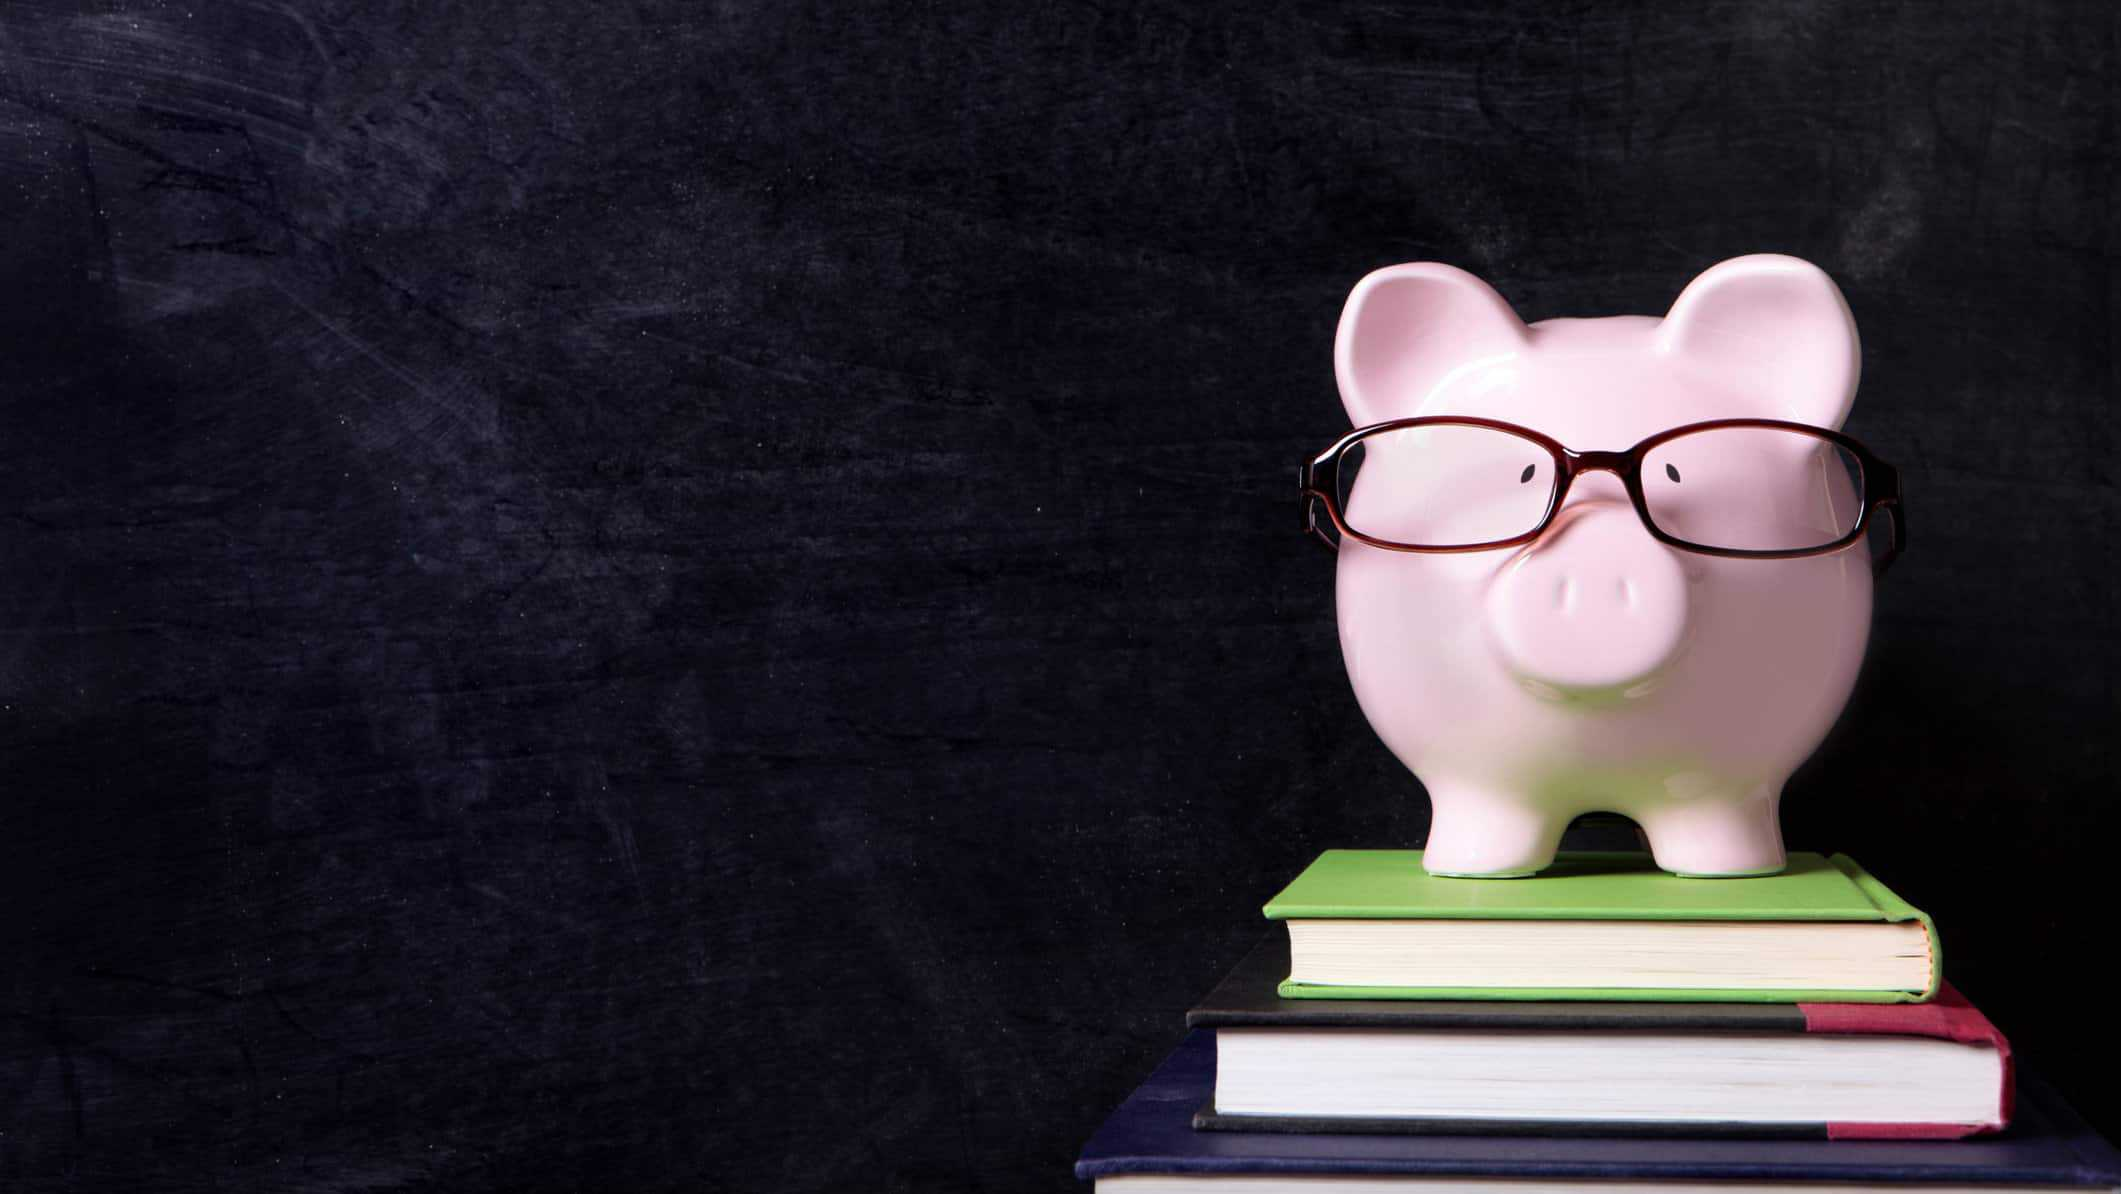 Piggy bank wearing glasses sitting on pile of books